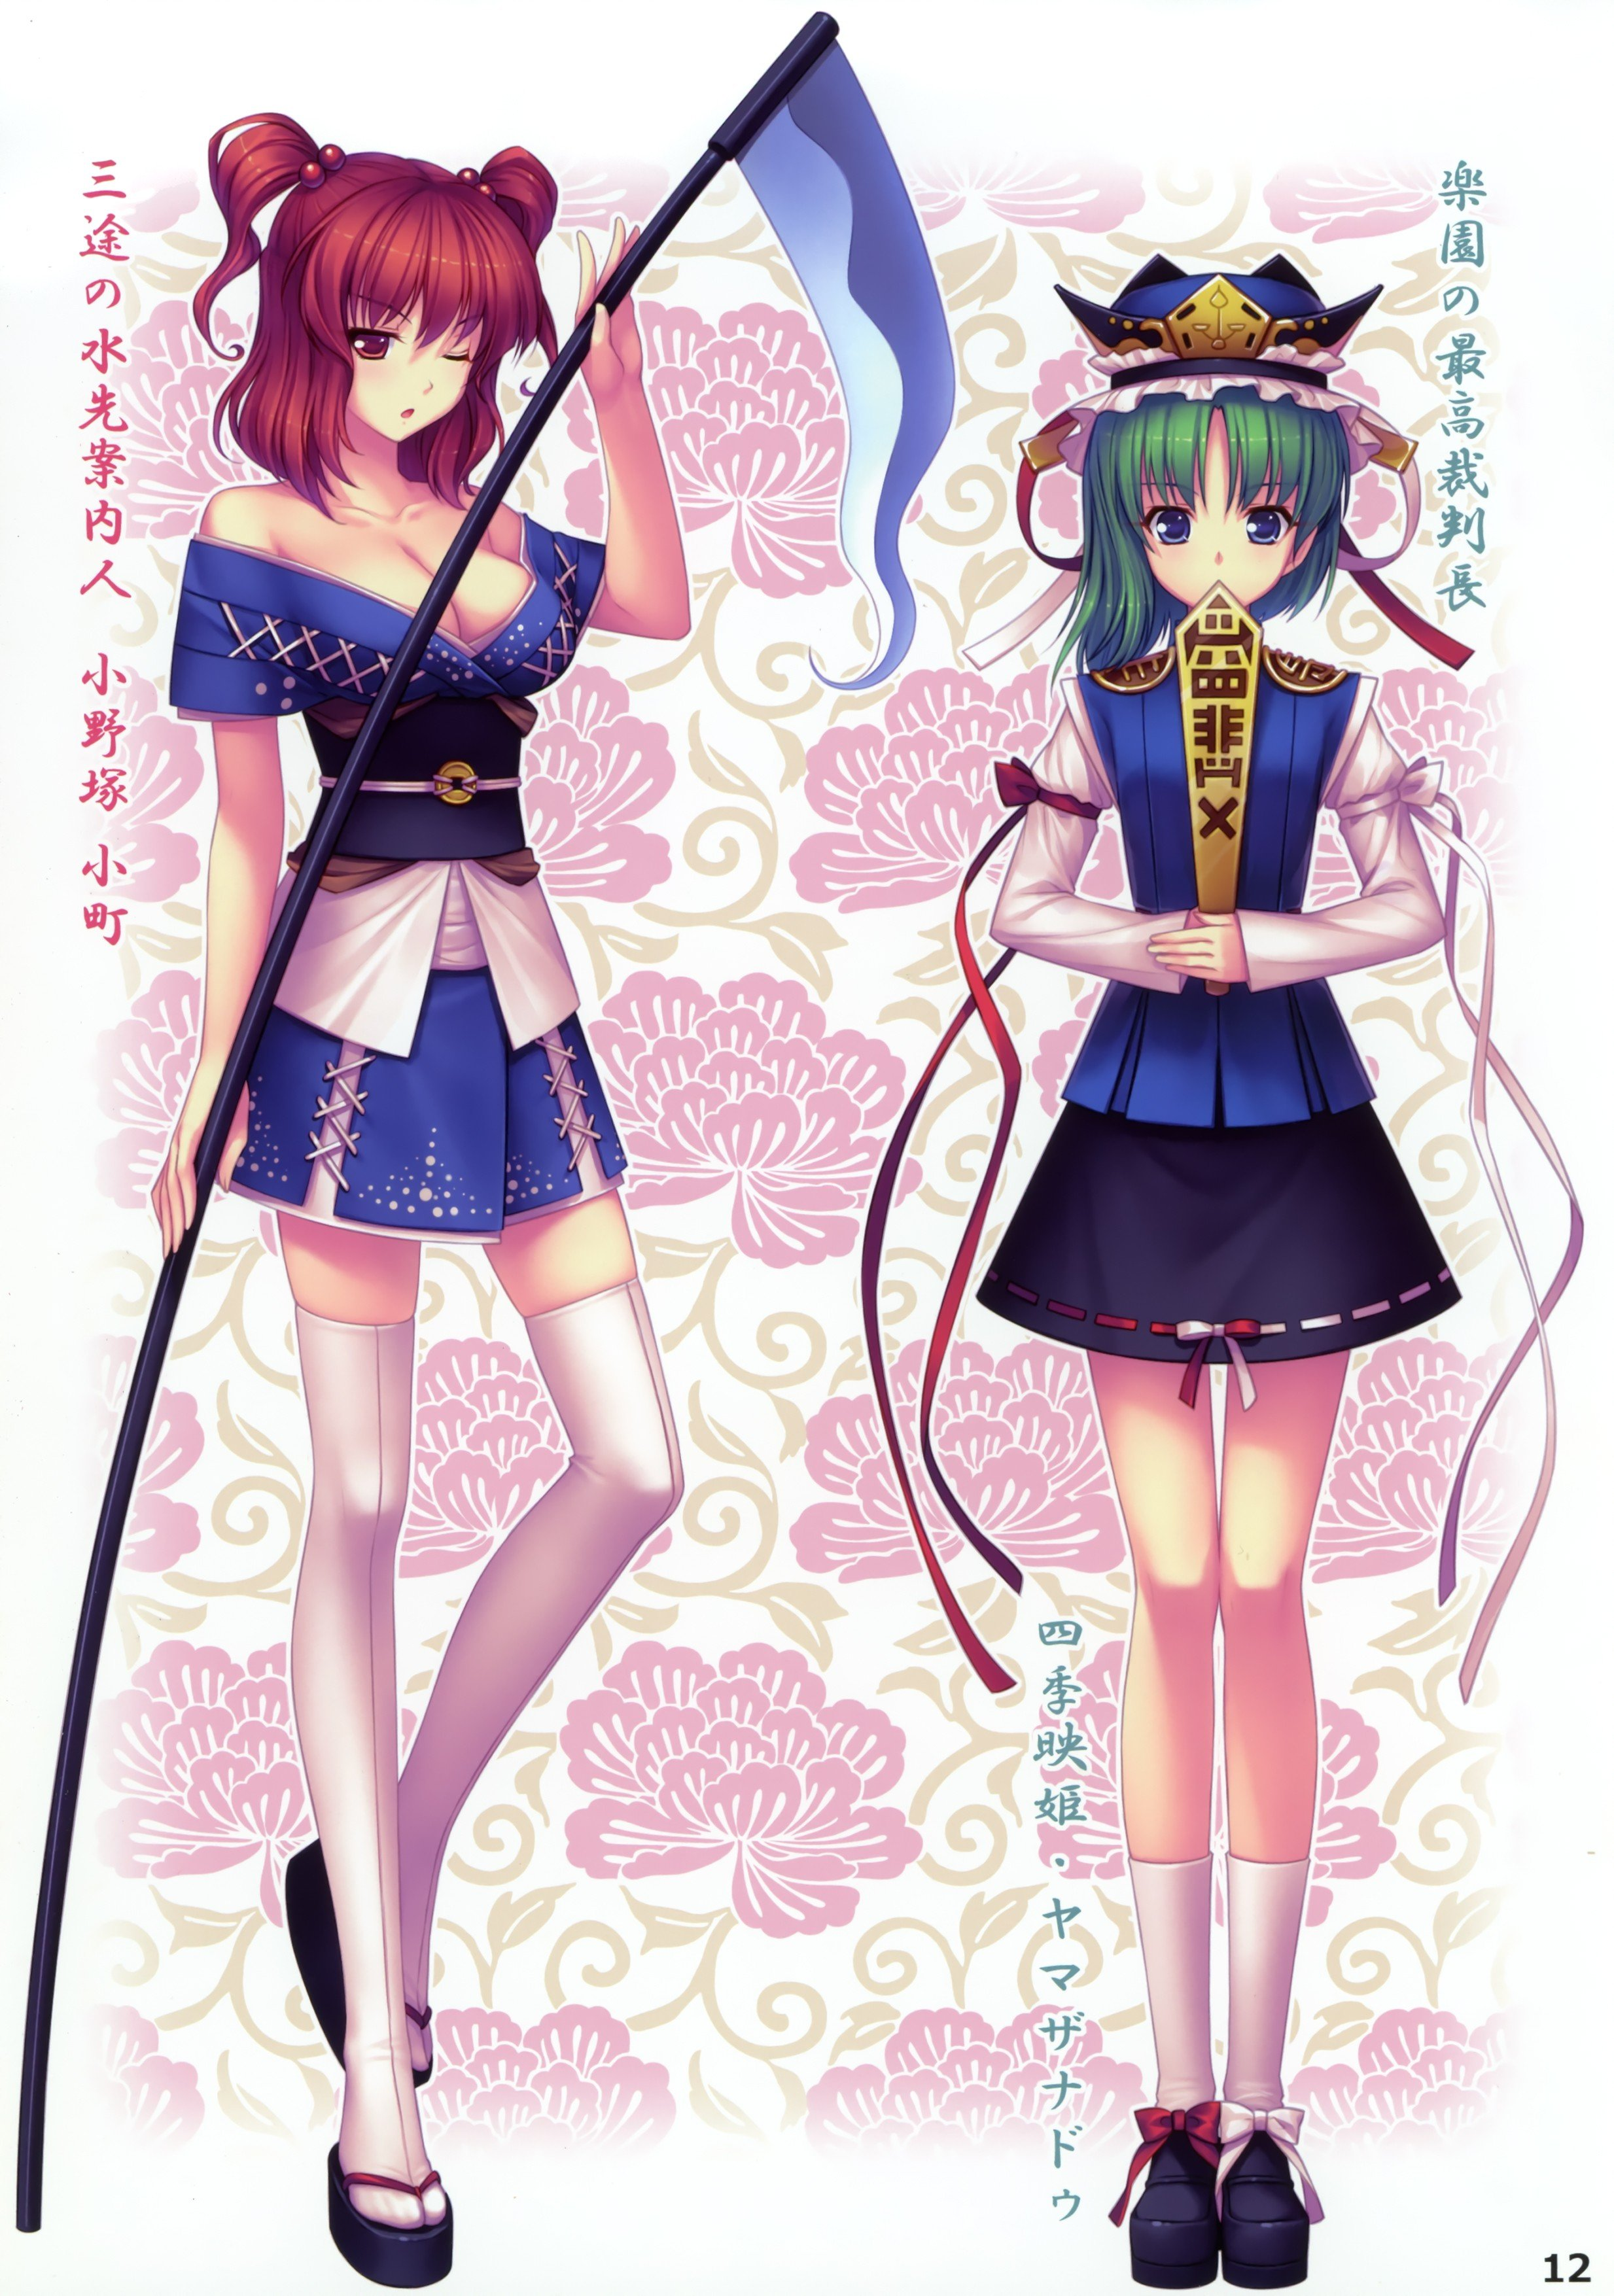 video games touhou uniforms flowers text blue eyes scythe